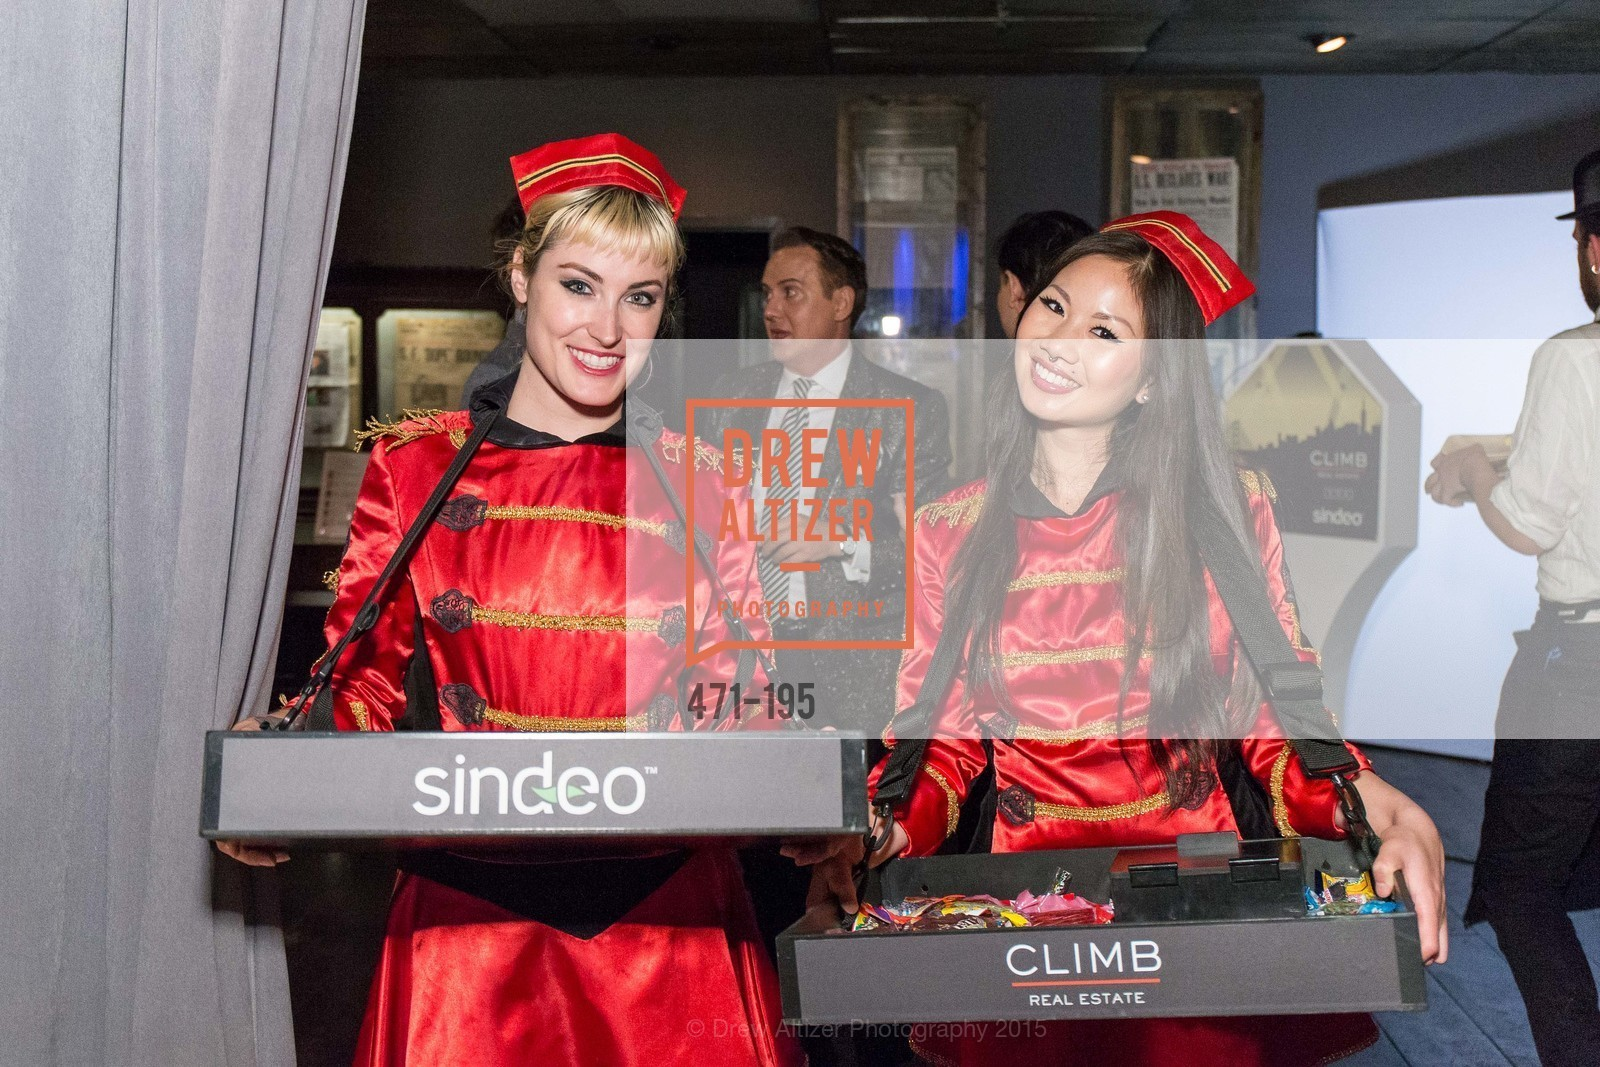 Colleen Schwarz, Alex Chong, Climb Real Estate and Sindeo Celebrate the Launch of Million Dollar Listing San Francisco, Local Edition San Francisco. 691 Market St, July 8th, 2015,Drew Altizer, Drew Altizer Photography, full-service agency, private events, San Francisco photographer, photographer california